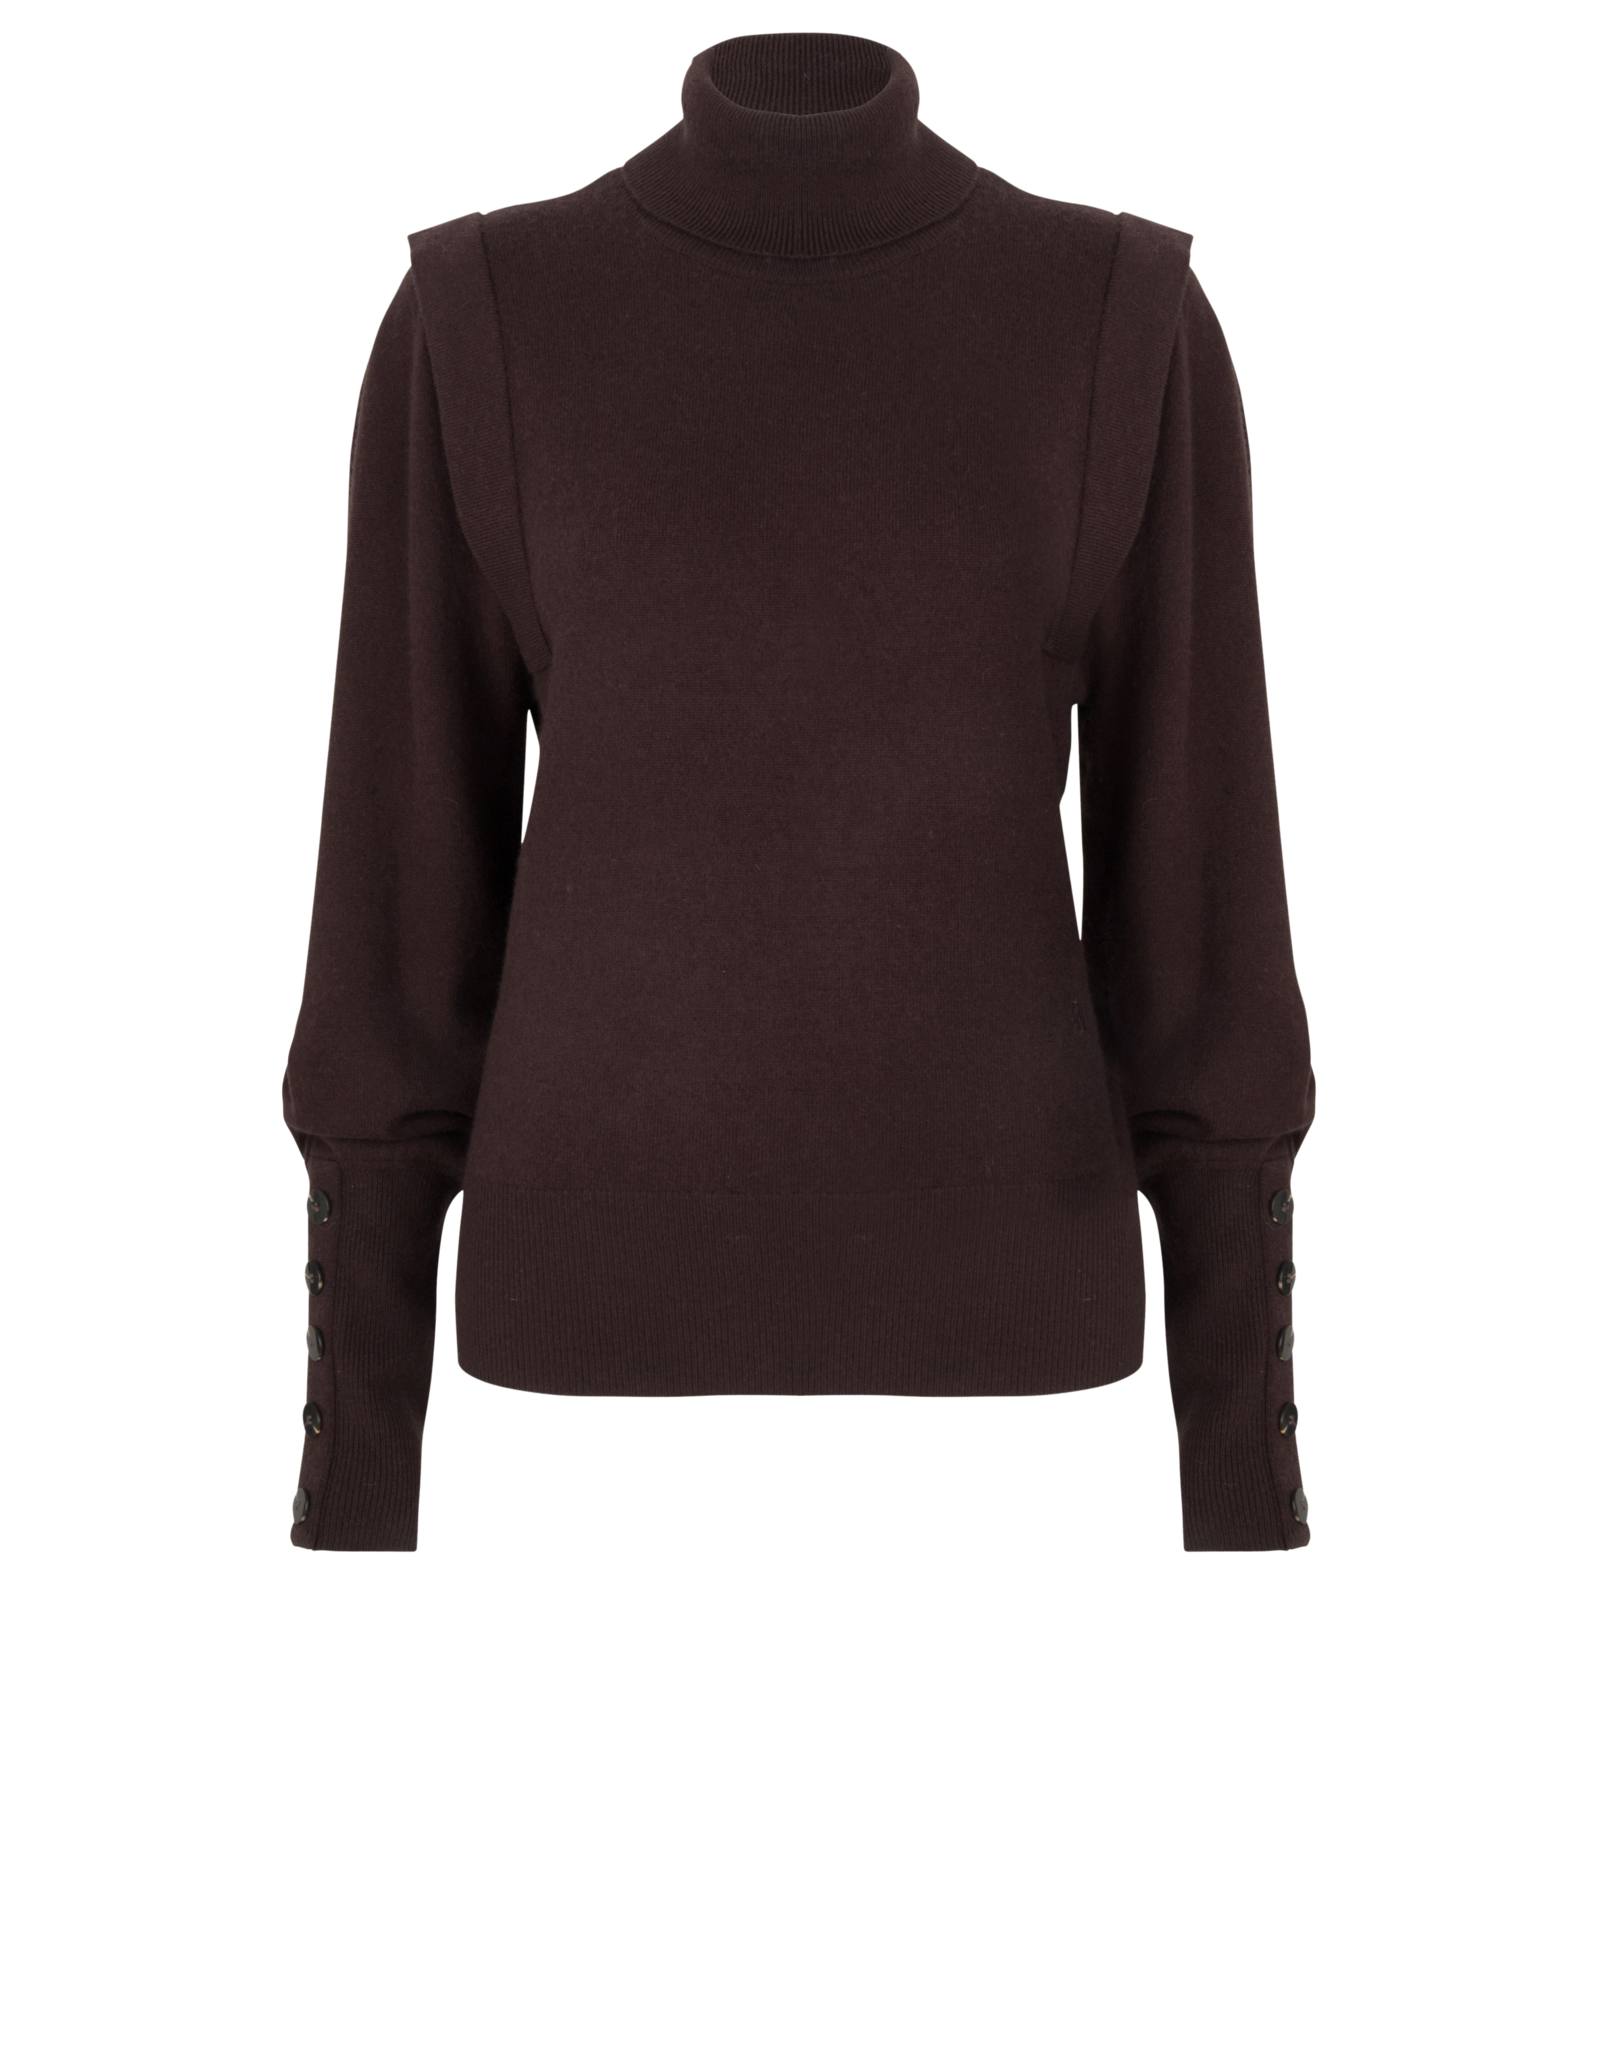 Dante6 Quentin sleeve detail sweater